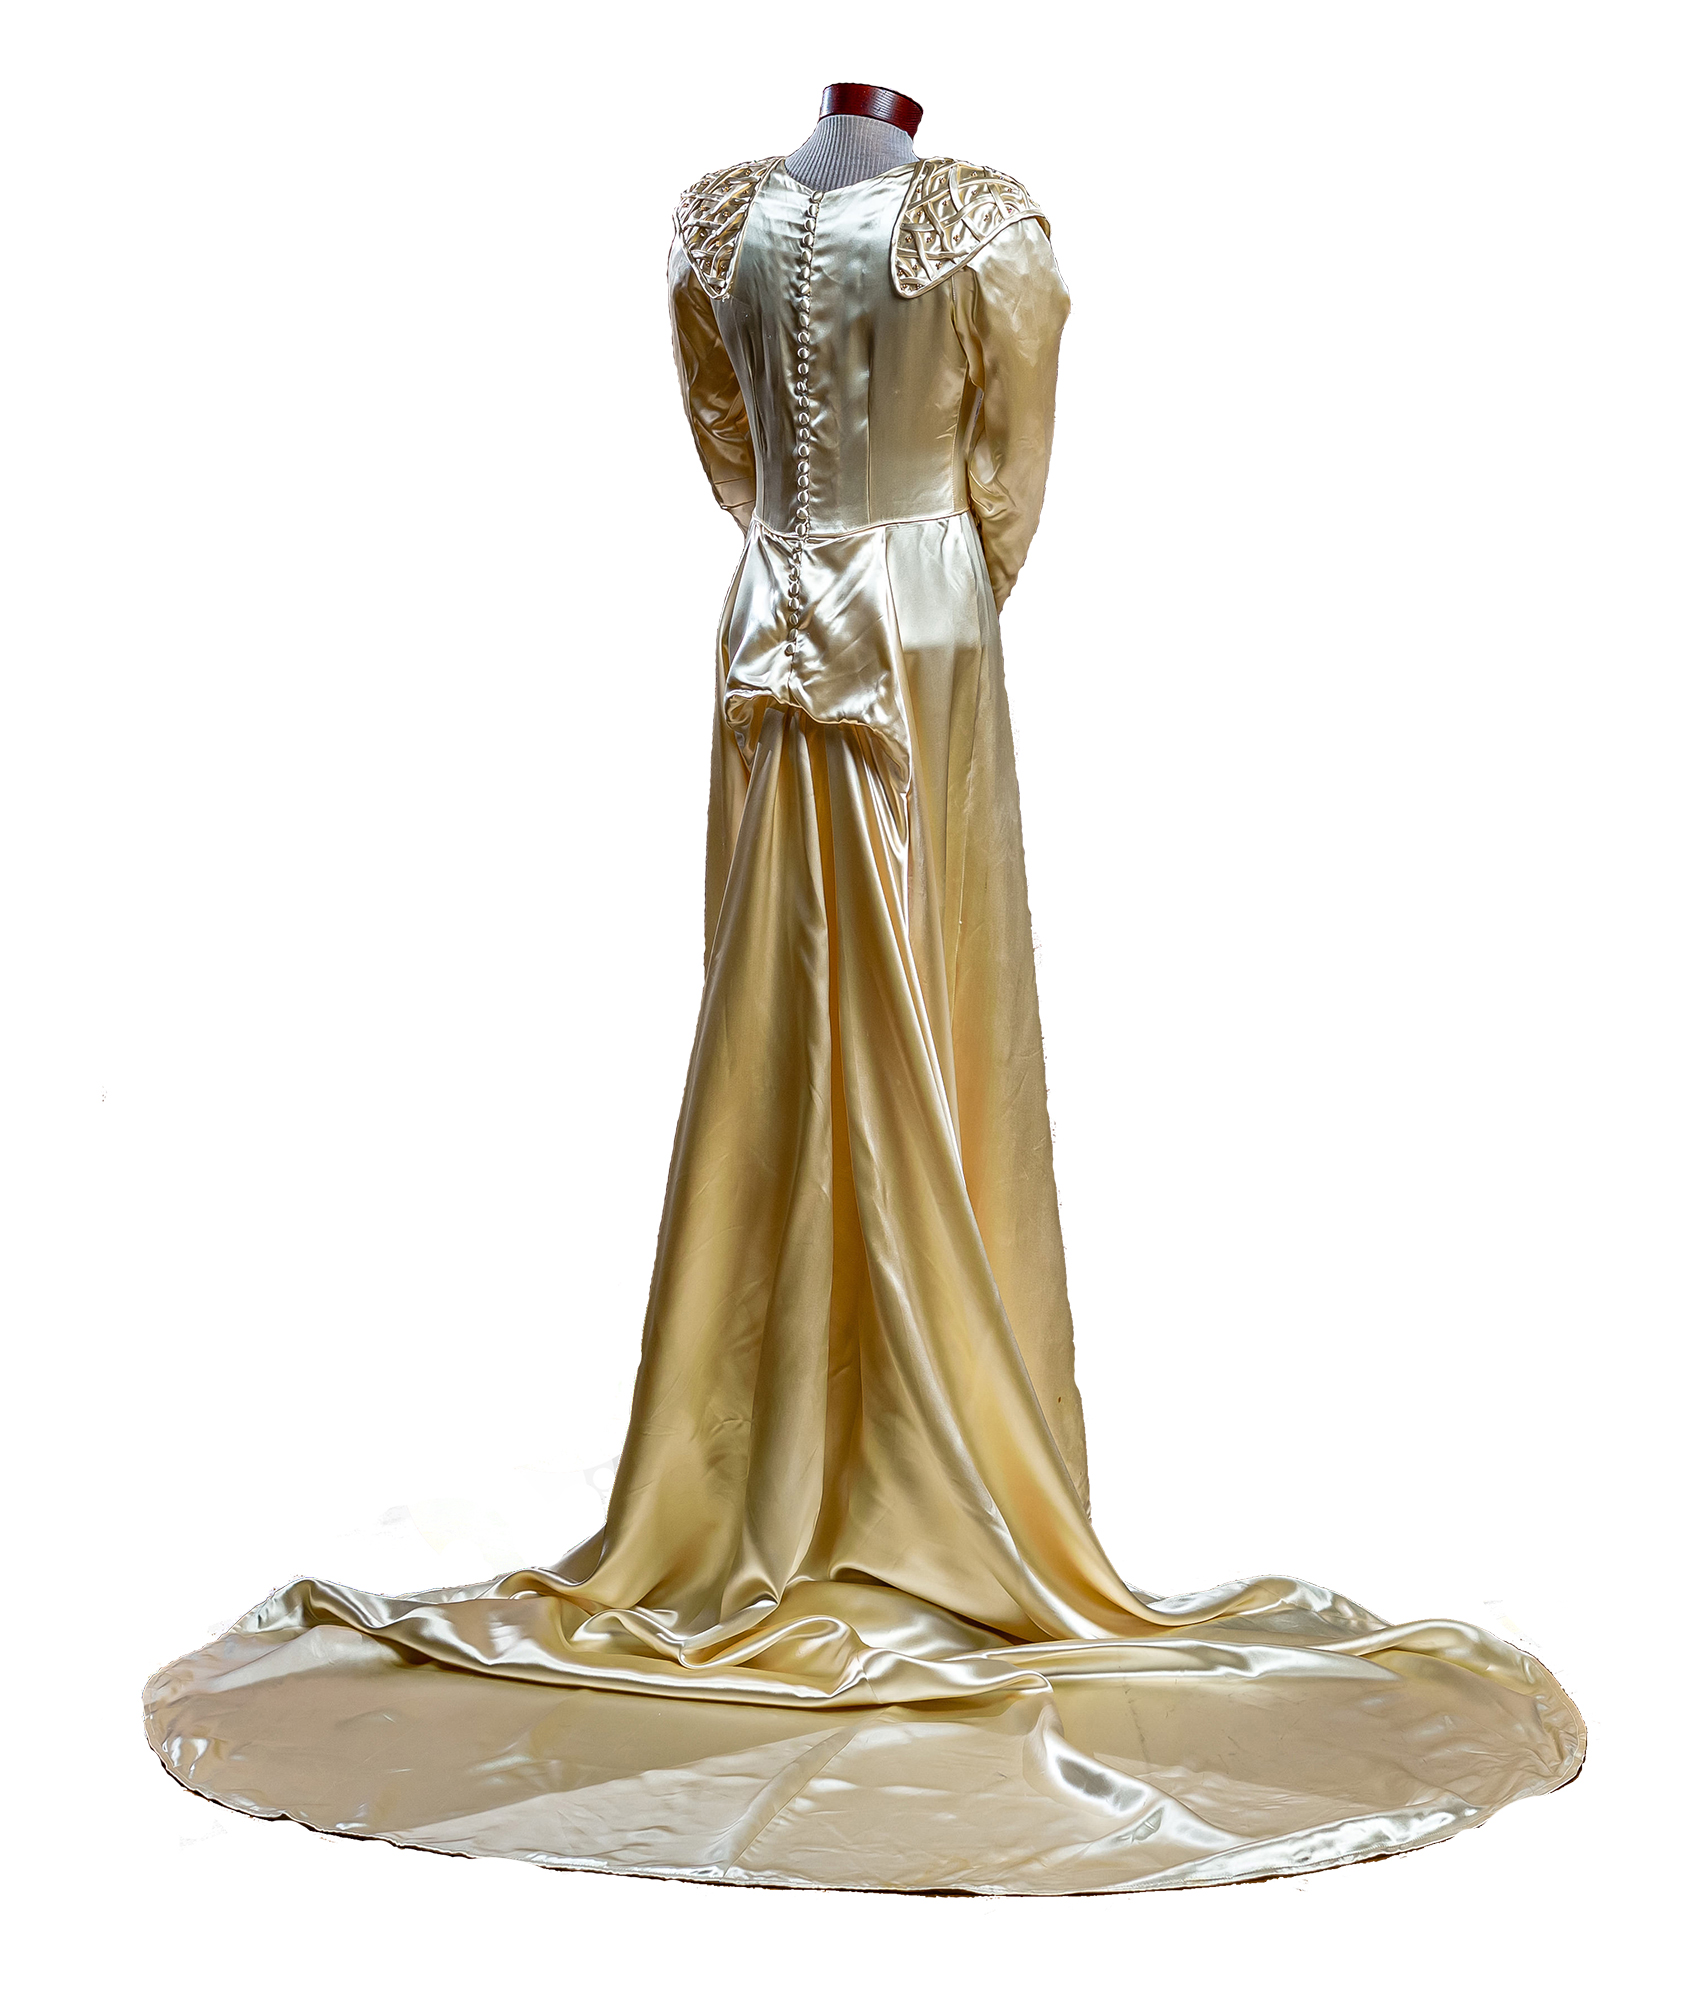 Candlelight ivory Skinner satin gown with tasseled embroidery, princess waist, long sleeves, train, and back zipper.